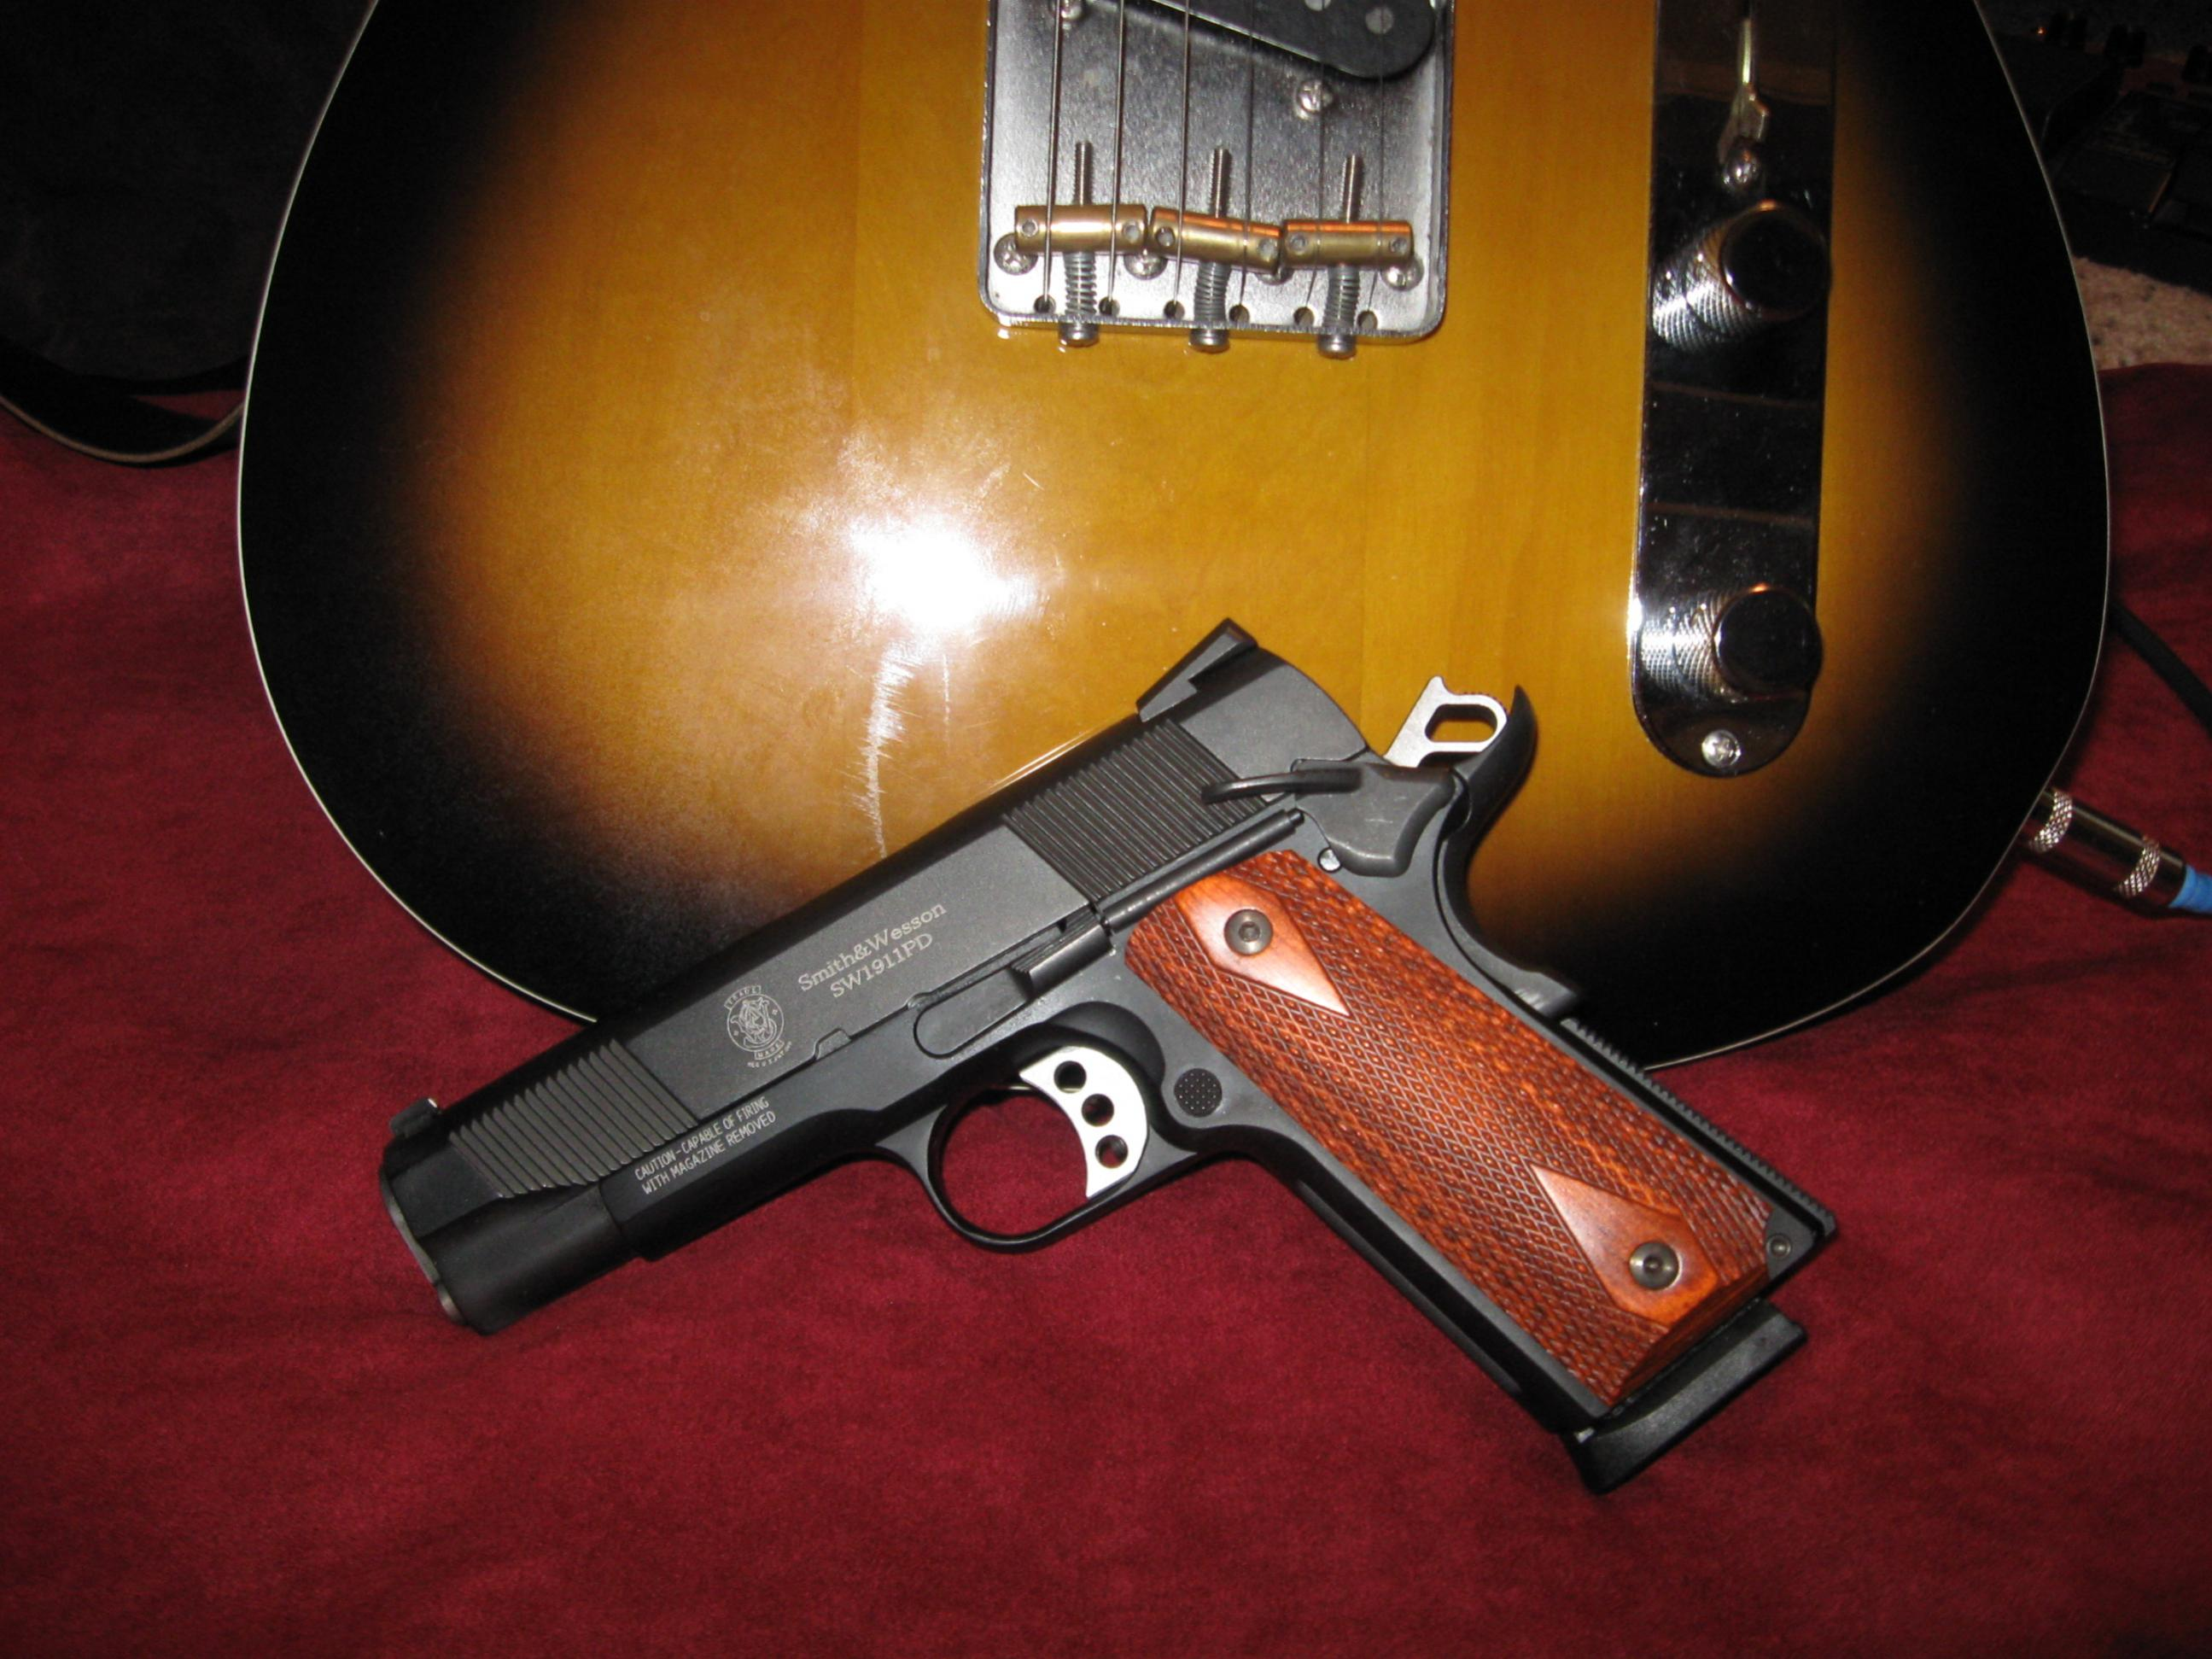 New S&W 1911PD-img_0721.jpg